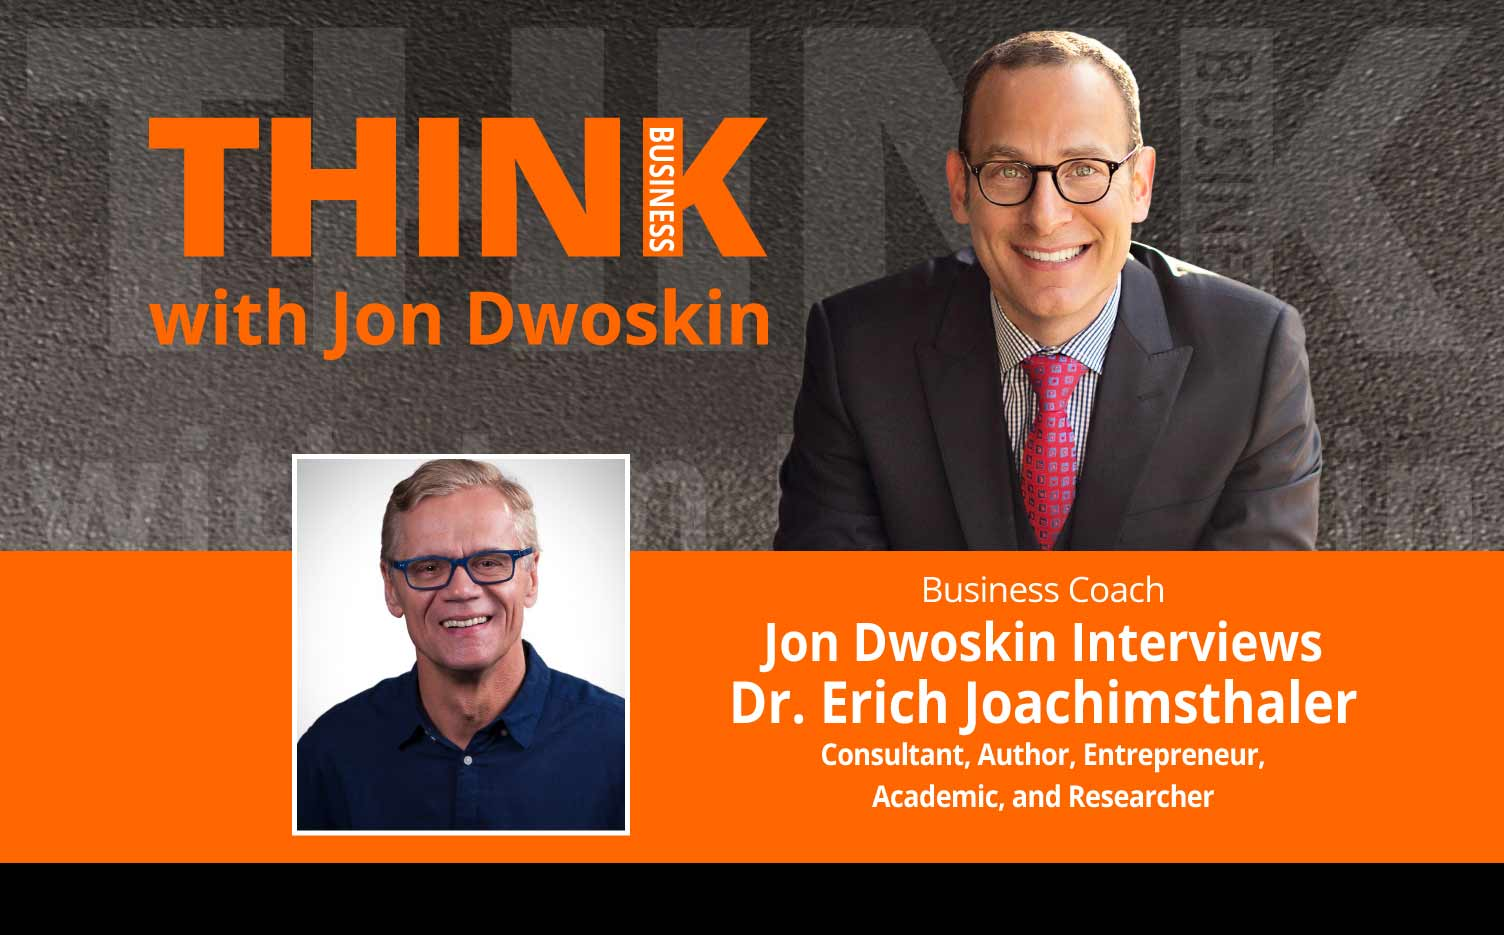 THINK Business Podcast: Jon Dwoskin Interviews Dr. Erich Joachimsthaler, Consultant, Author, Entrepreneur, Academic, and Researcher